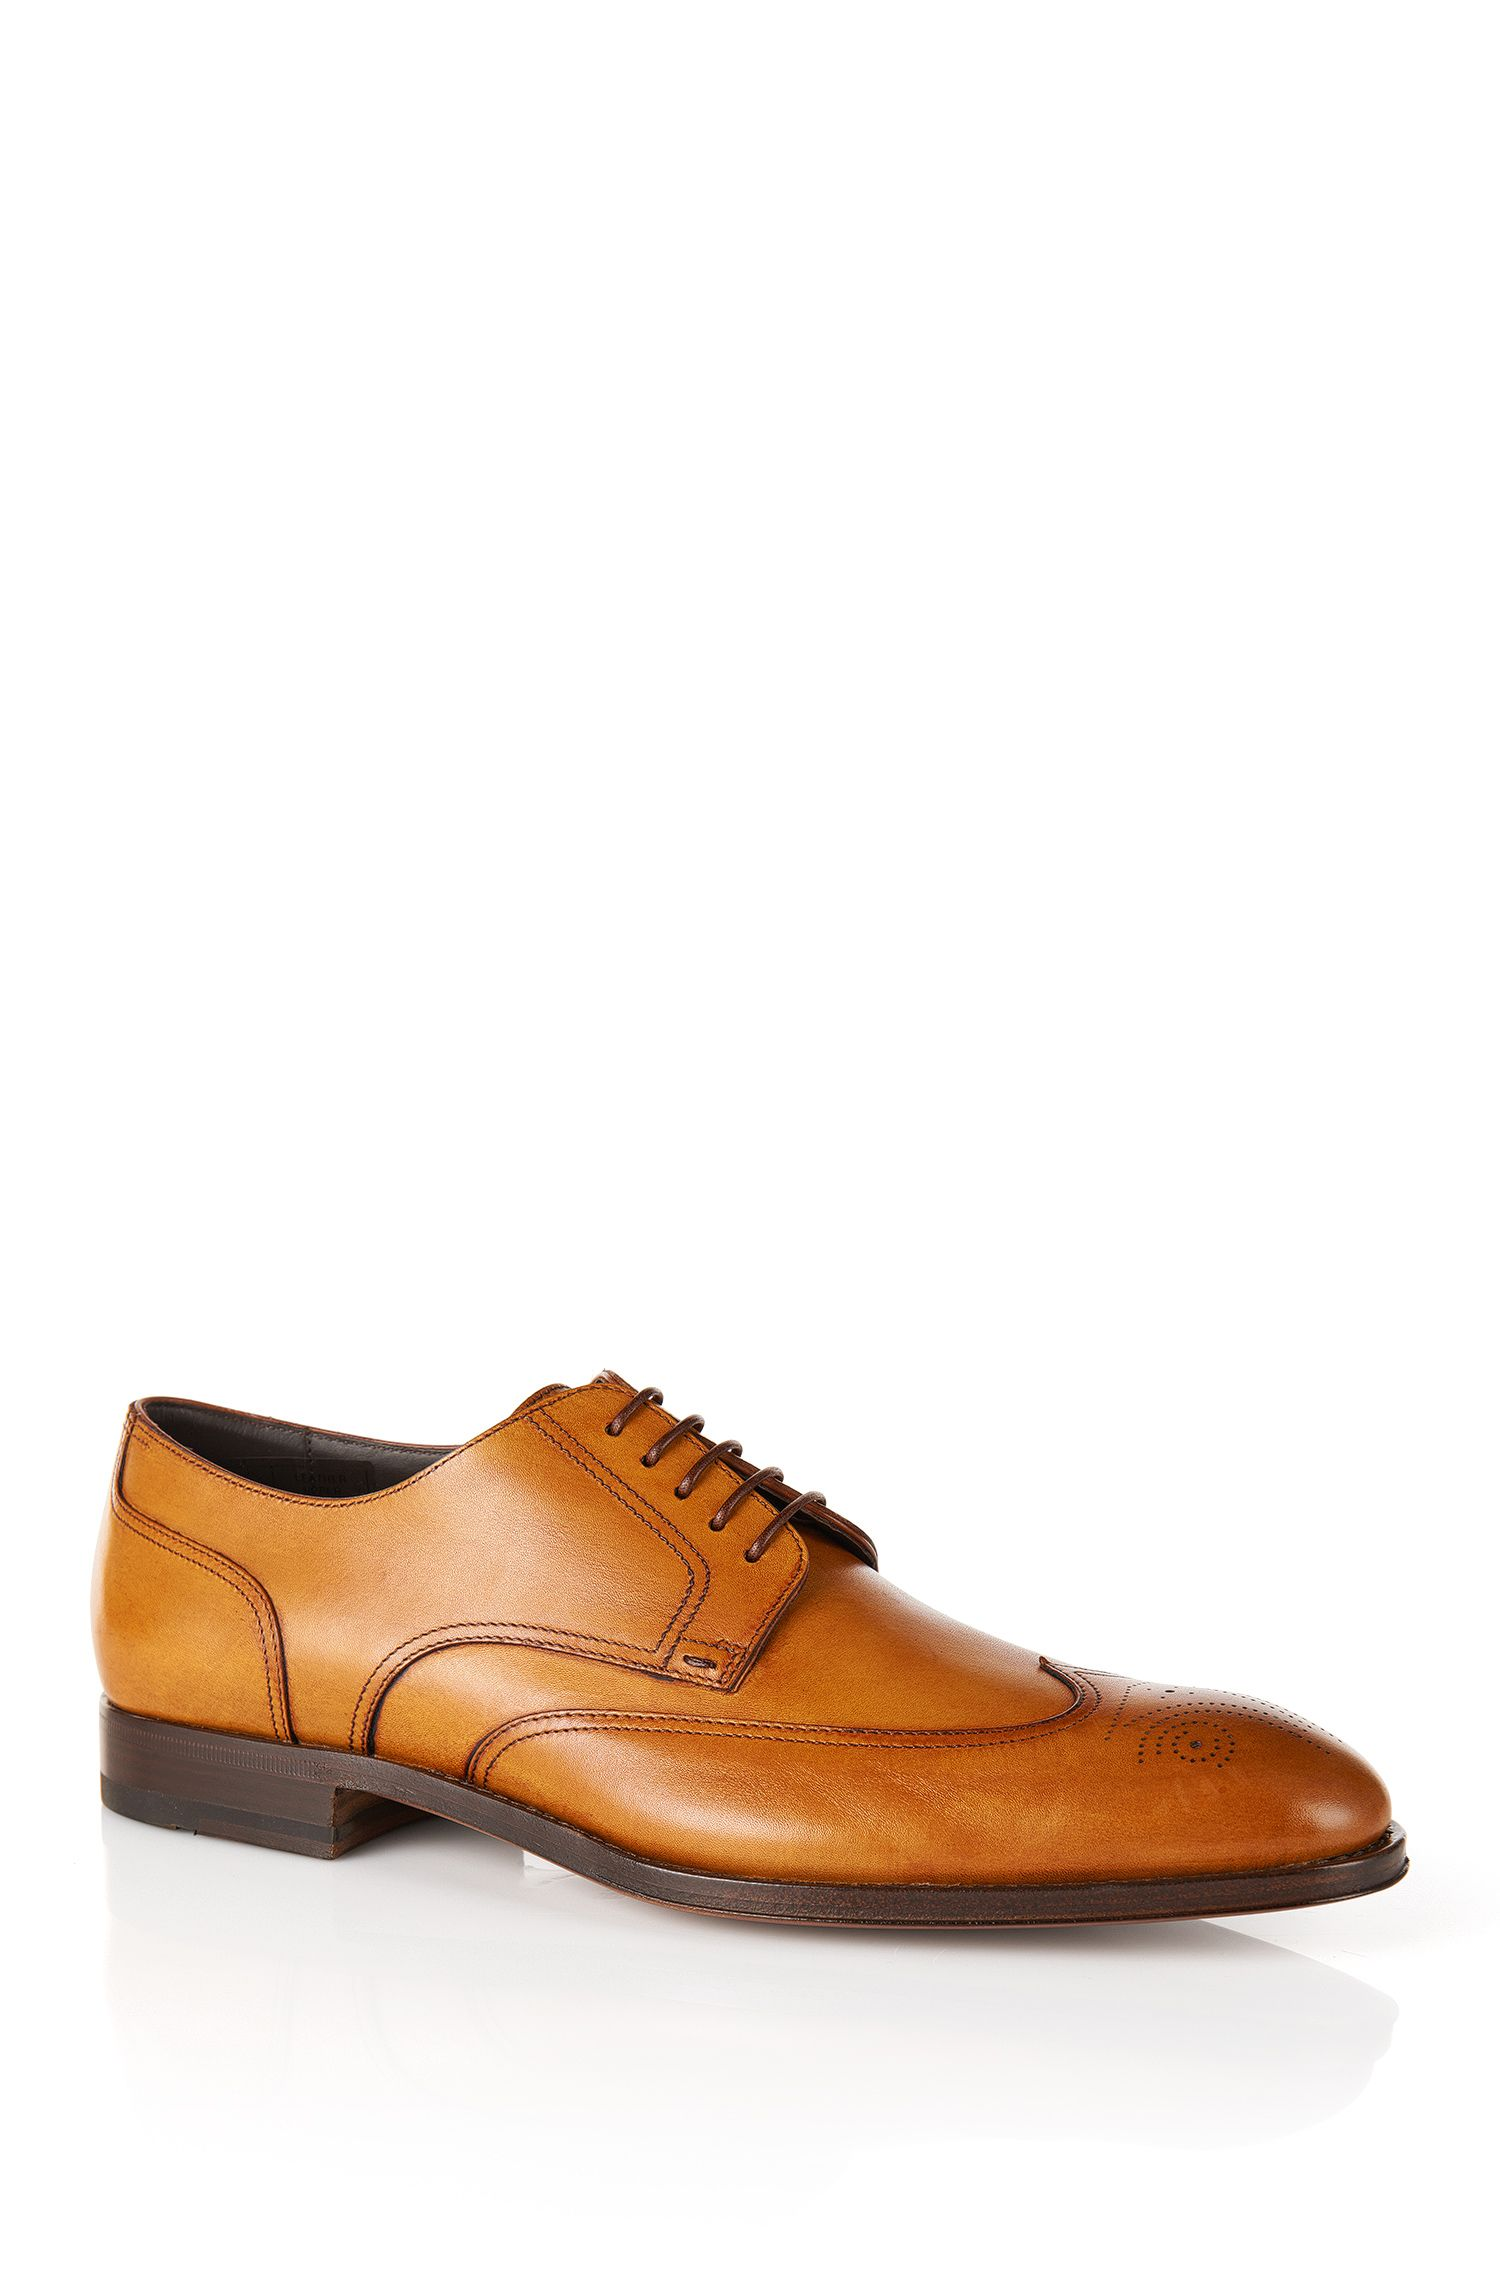 'T-Legender' | Italian Calfskin Brogue Wingtip Dress Shoes